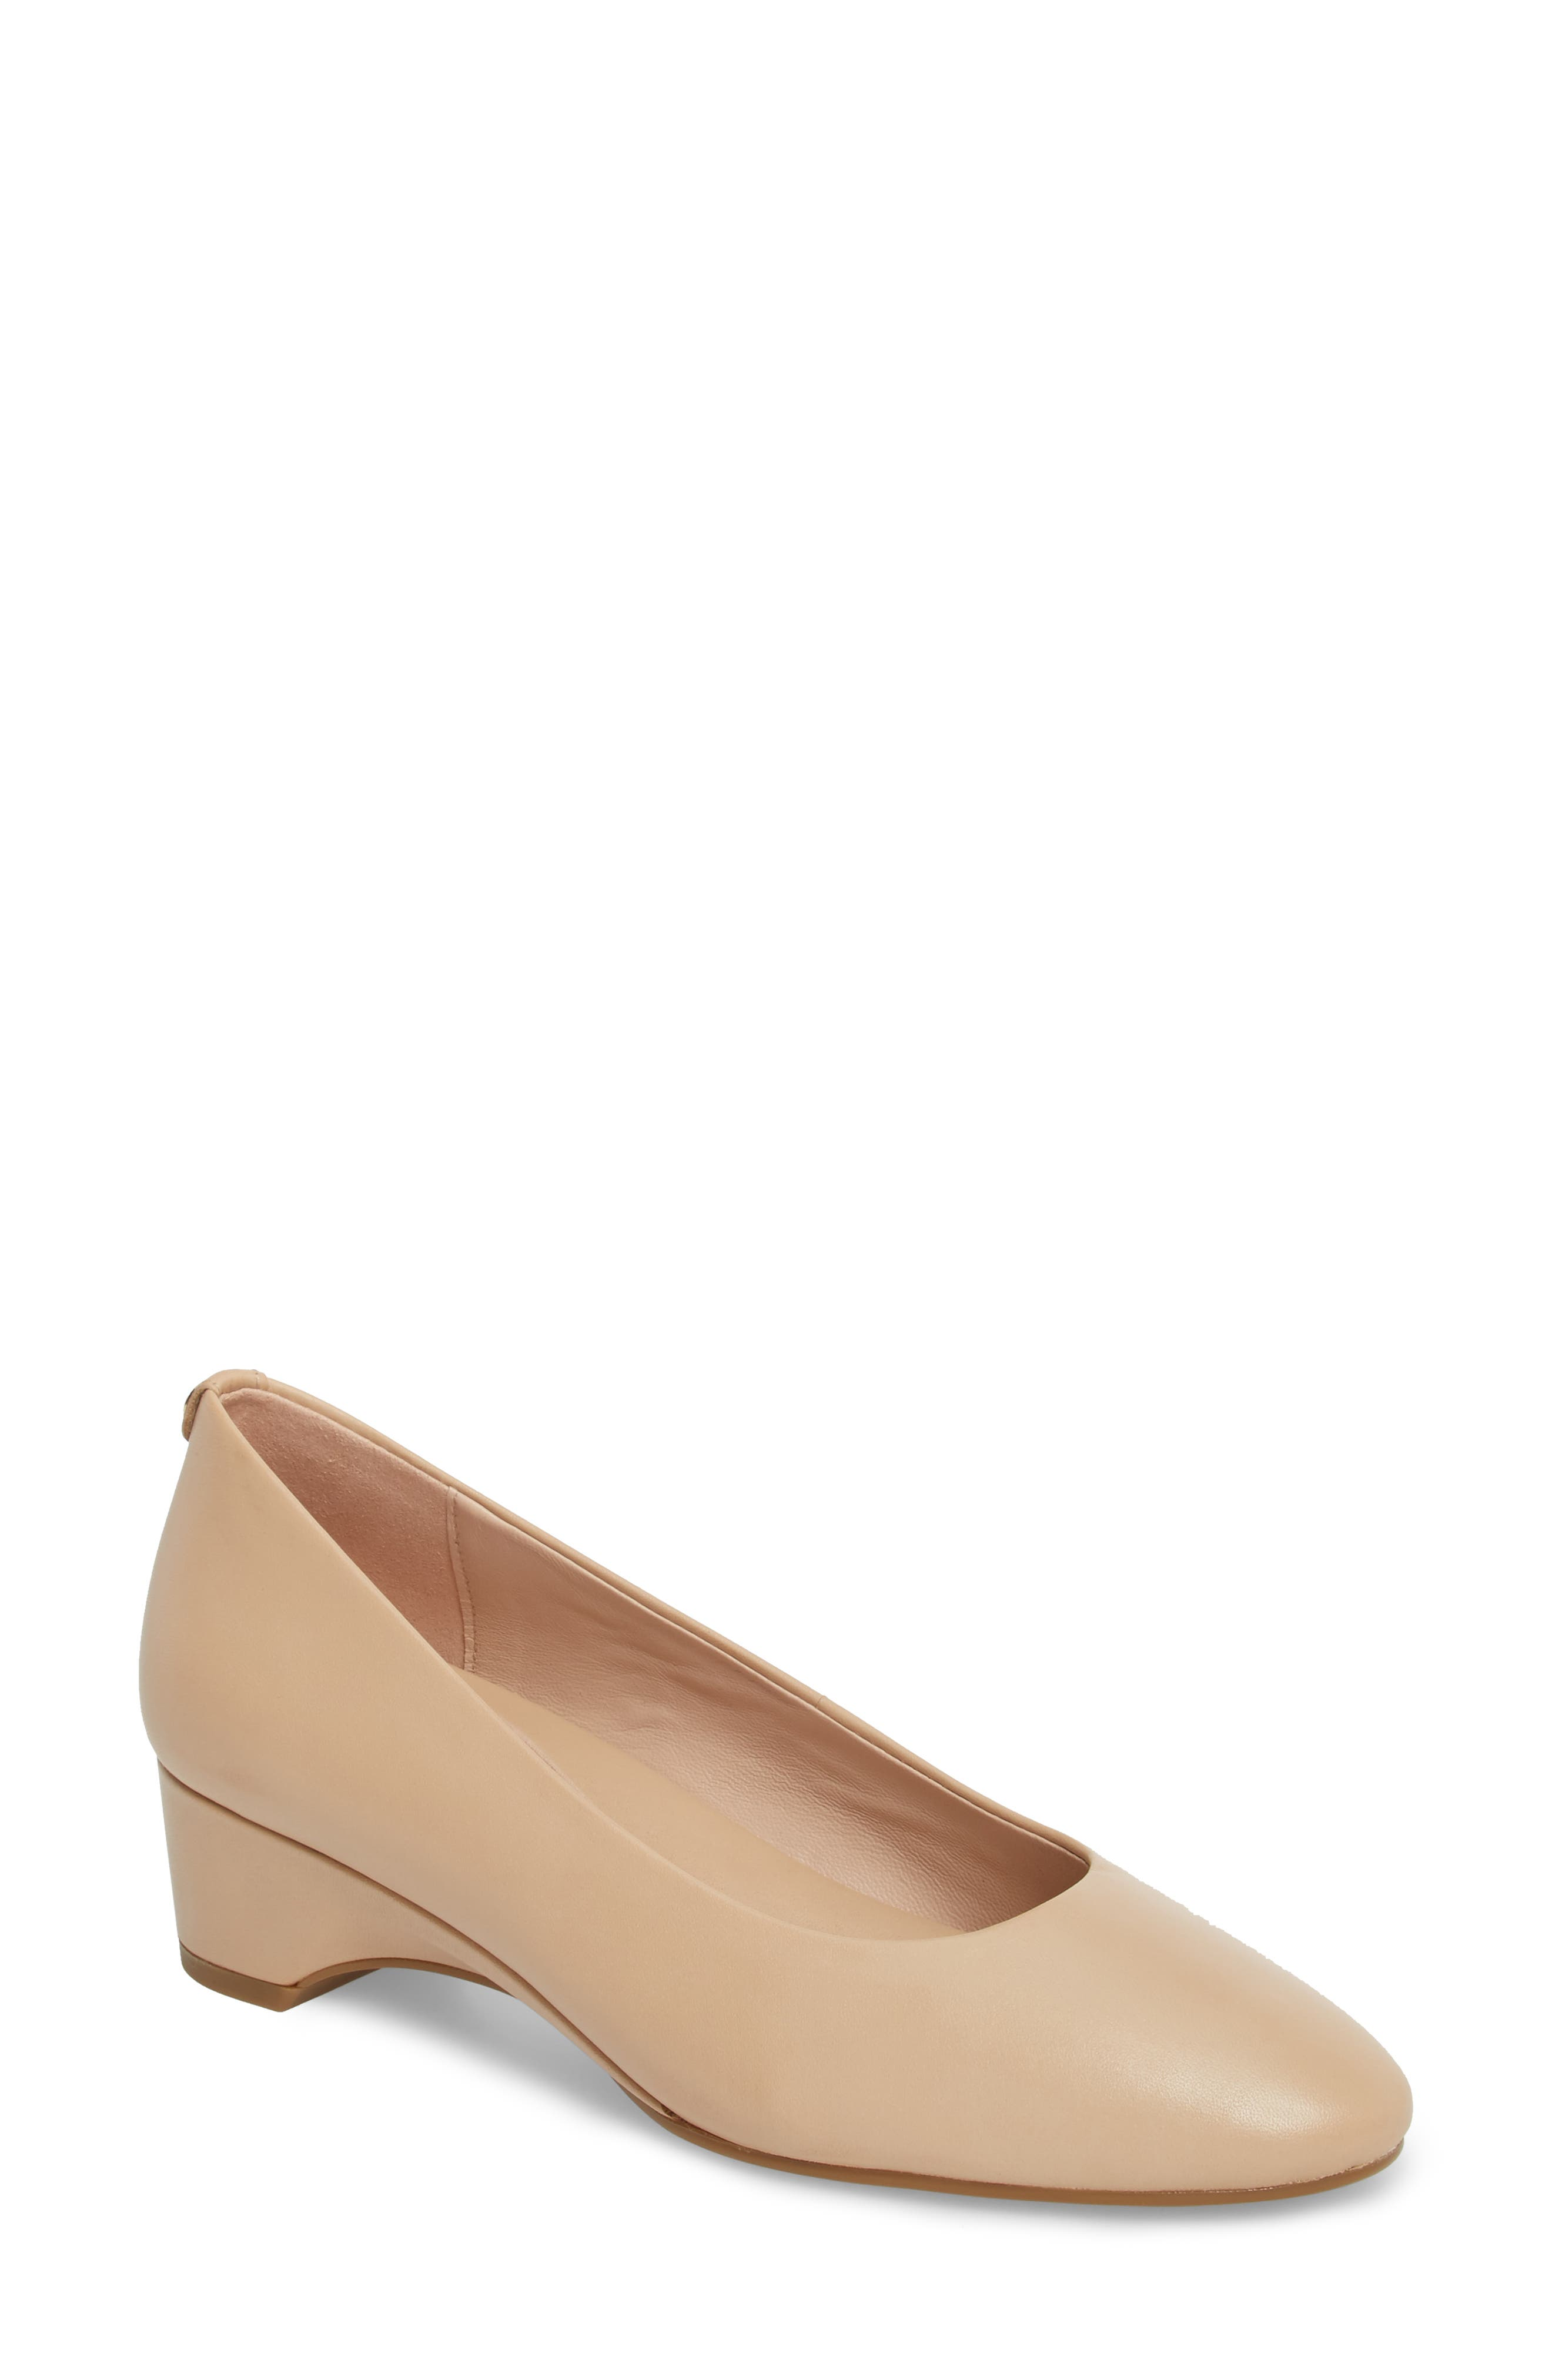 Babs Wedge Pump,                             Main thumbnail 1, color,                             Sand Leather